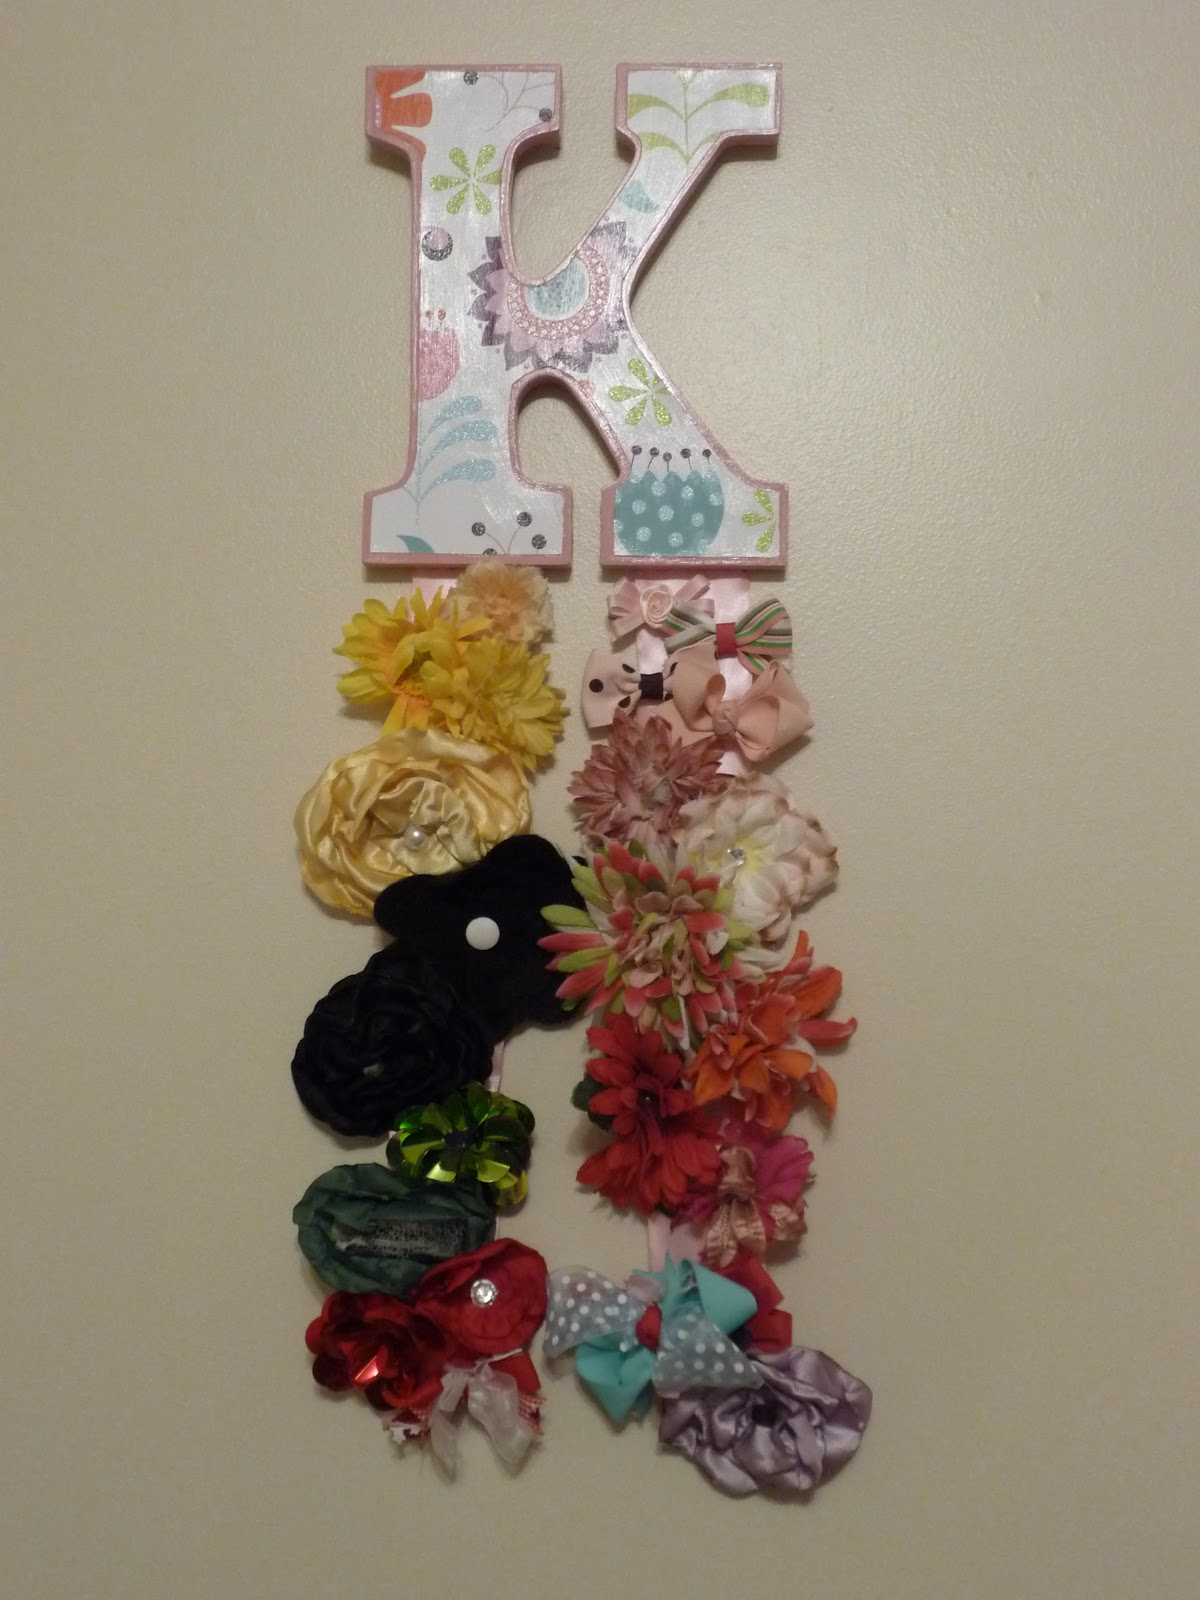 How to organize hair bows - Then I Hung All Her Bows And Flowers On The Pink Ribbon